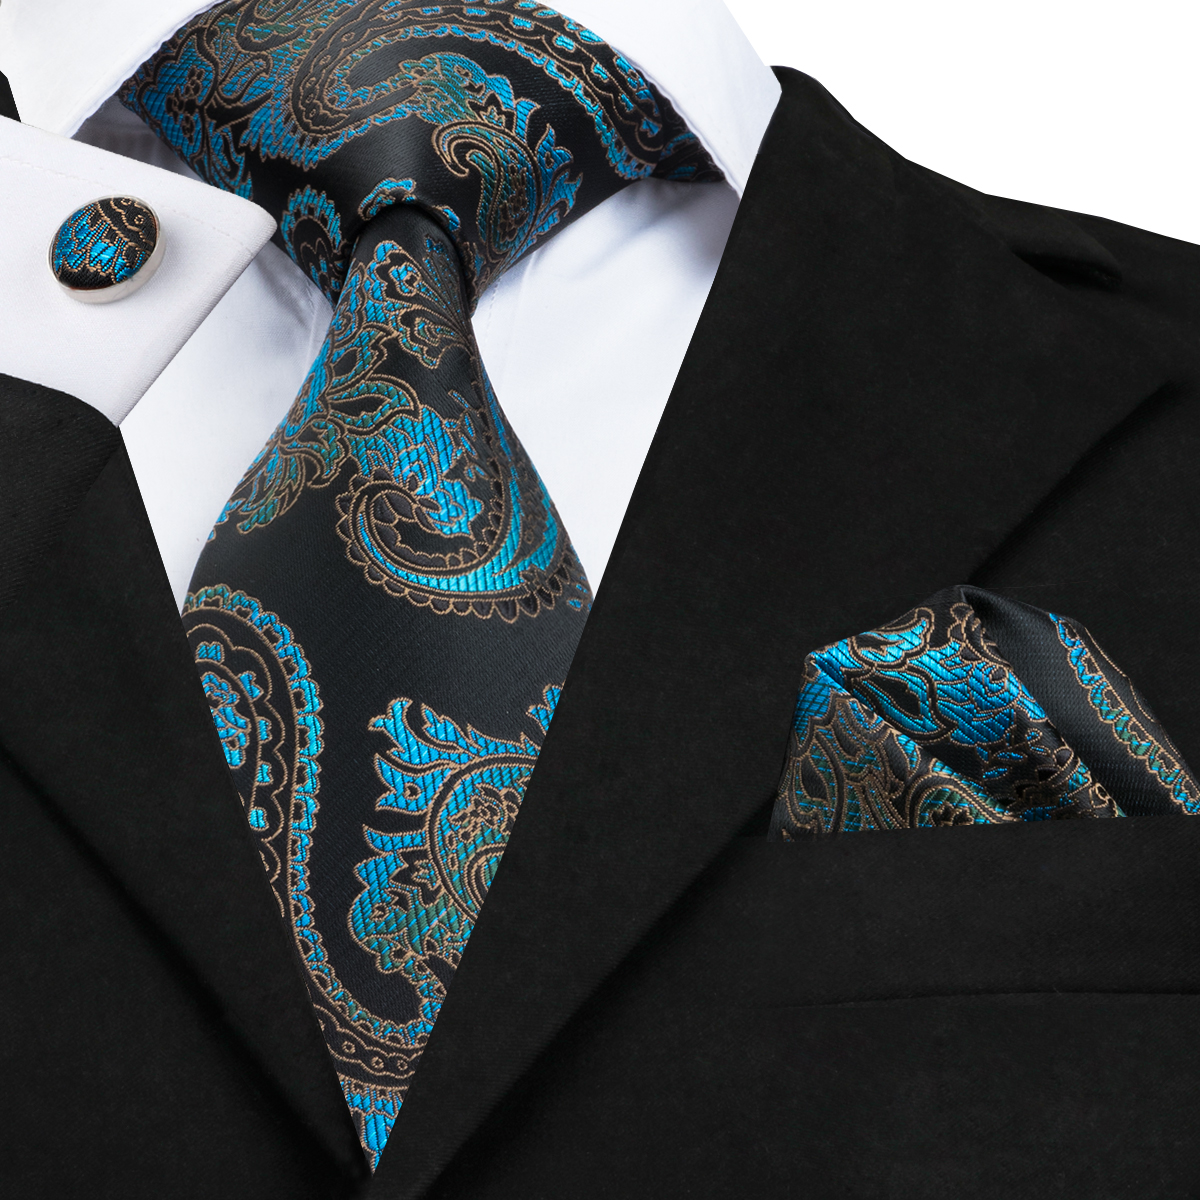 Luxury Floral Paisley Mens Blue Red Tie Gravata Pour Homme Male Silk Ties For Men Business Wedding Necktie 8.5cm Wide SN-1692